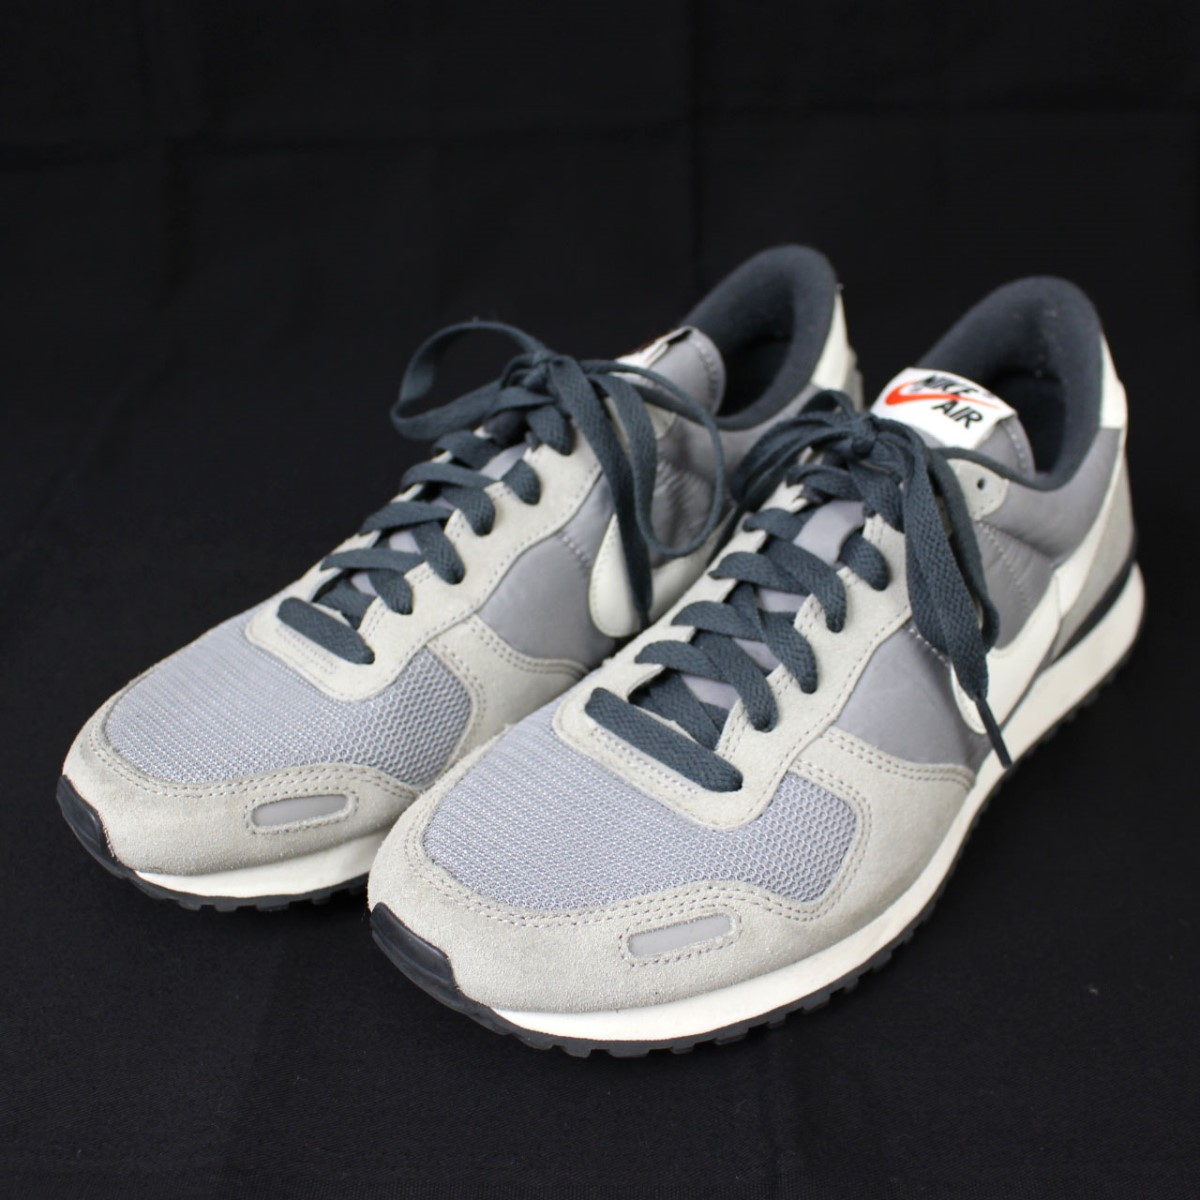 huge selection of 2ee78 b16e6 Kindal nike air vortex retro sneakers gray size nike rakuten global market  jpg 1200x1200 Nike air